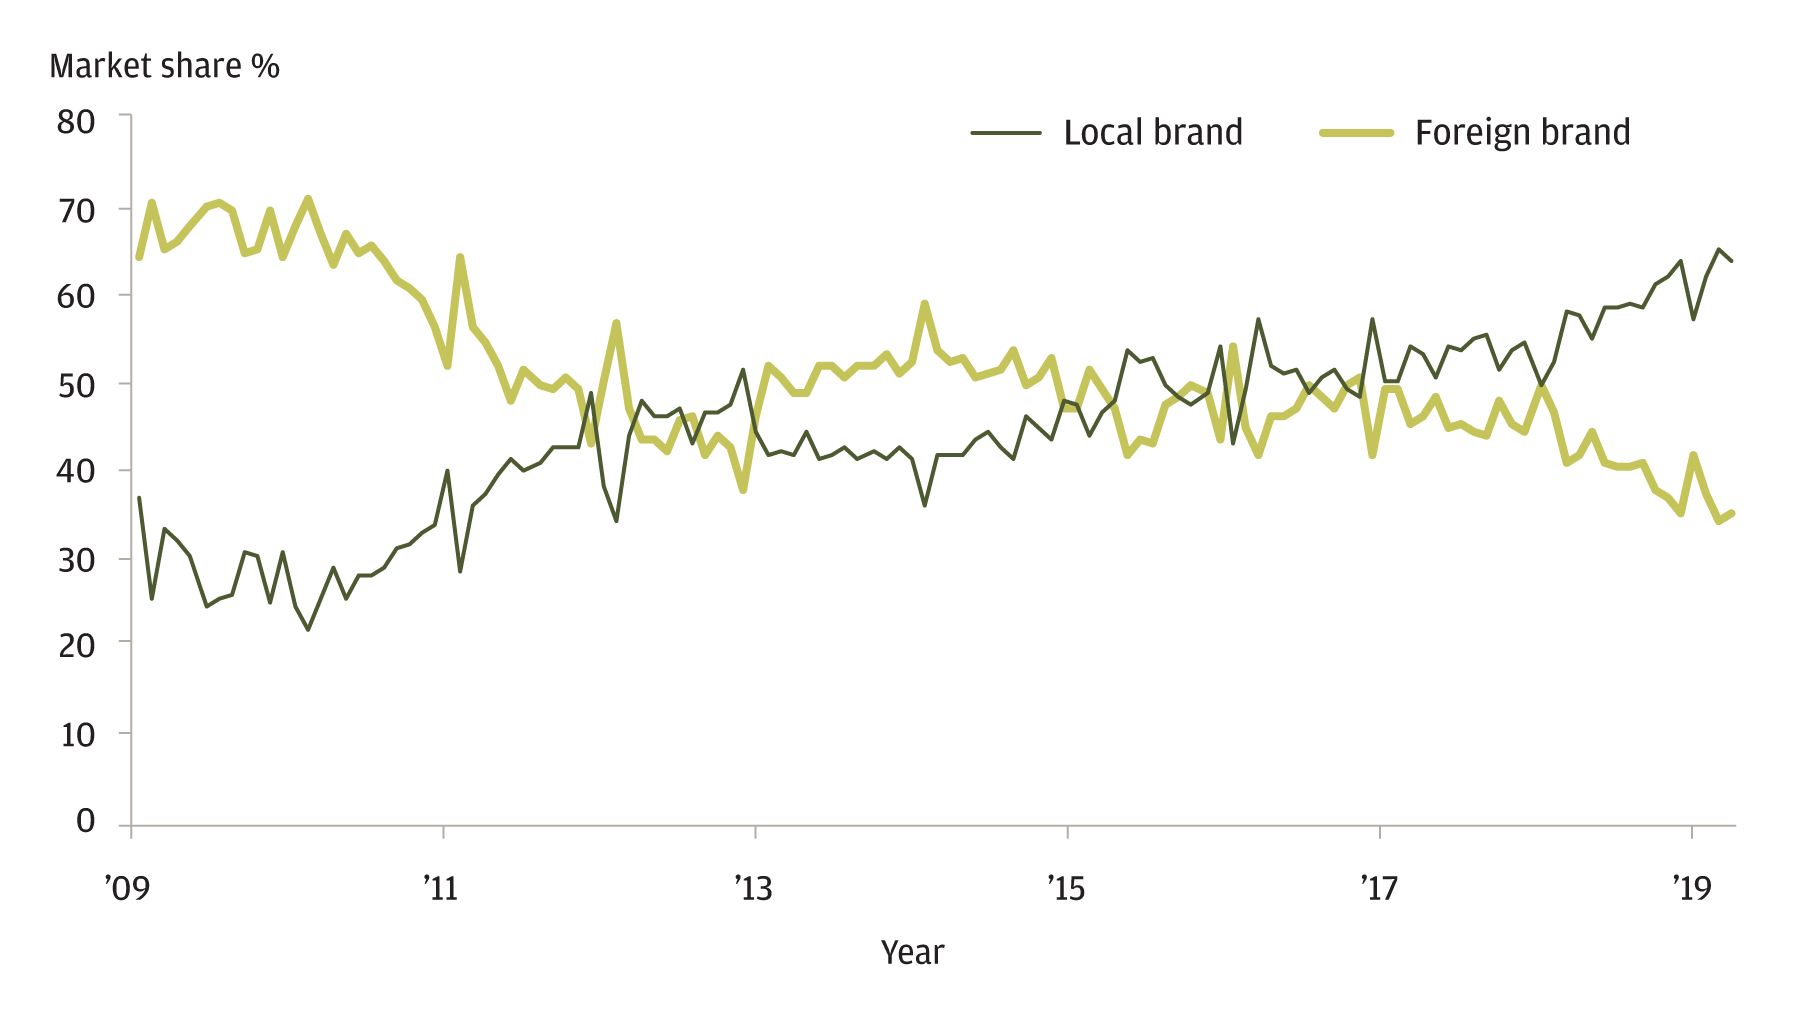 The line graph shows the excavator sales in China by brand, local brand and foreign brand, from 2009 through now. It indicates that during this time period, local brand market share has increased and foreign brand market share has decreased.